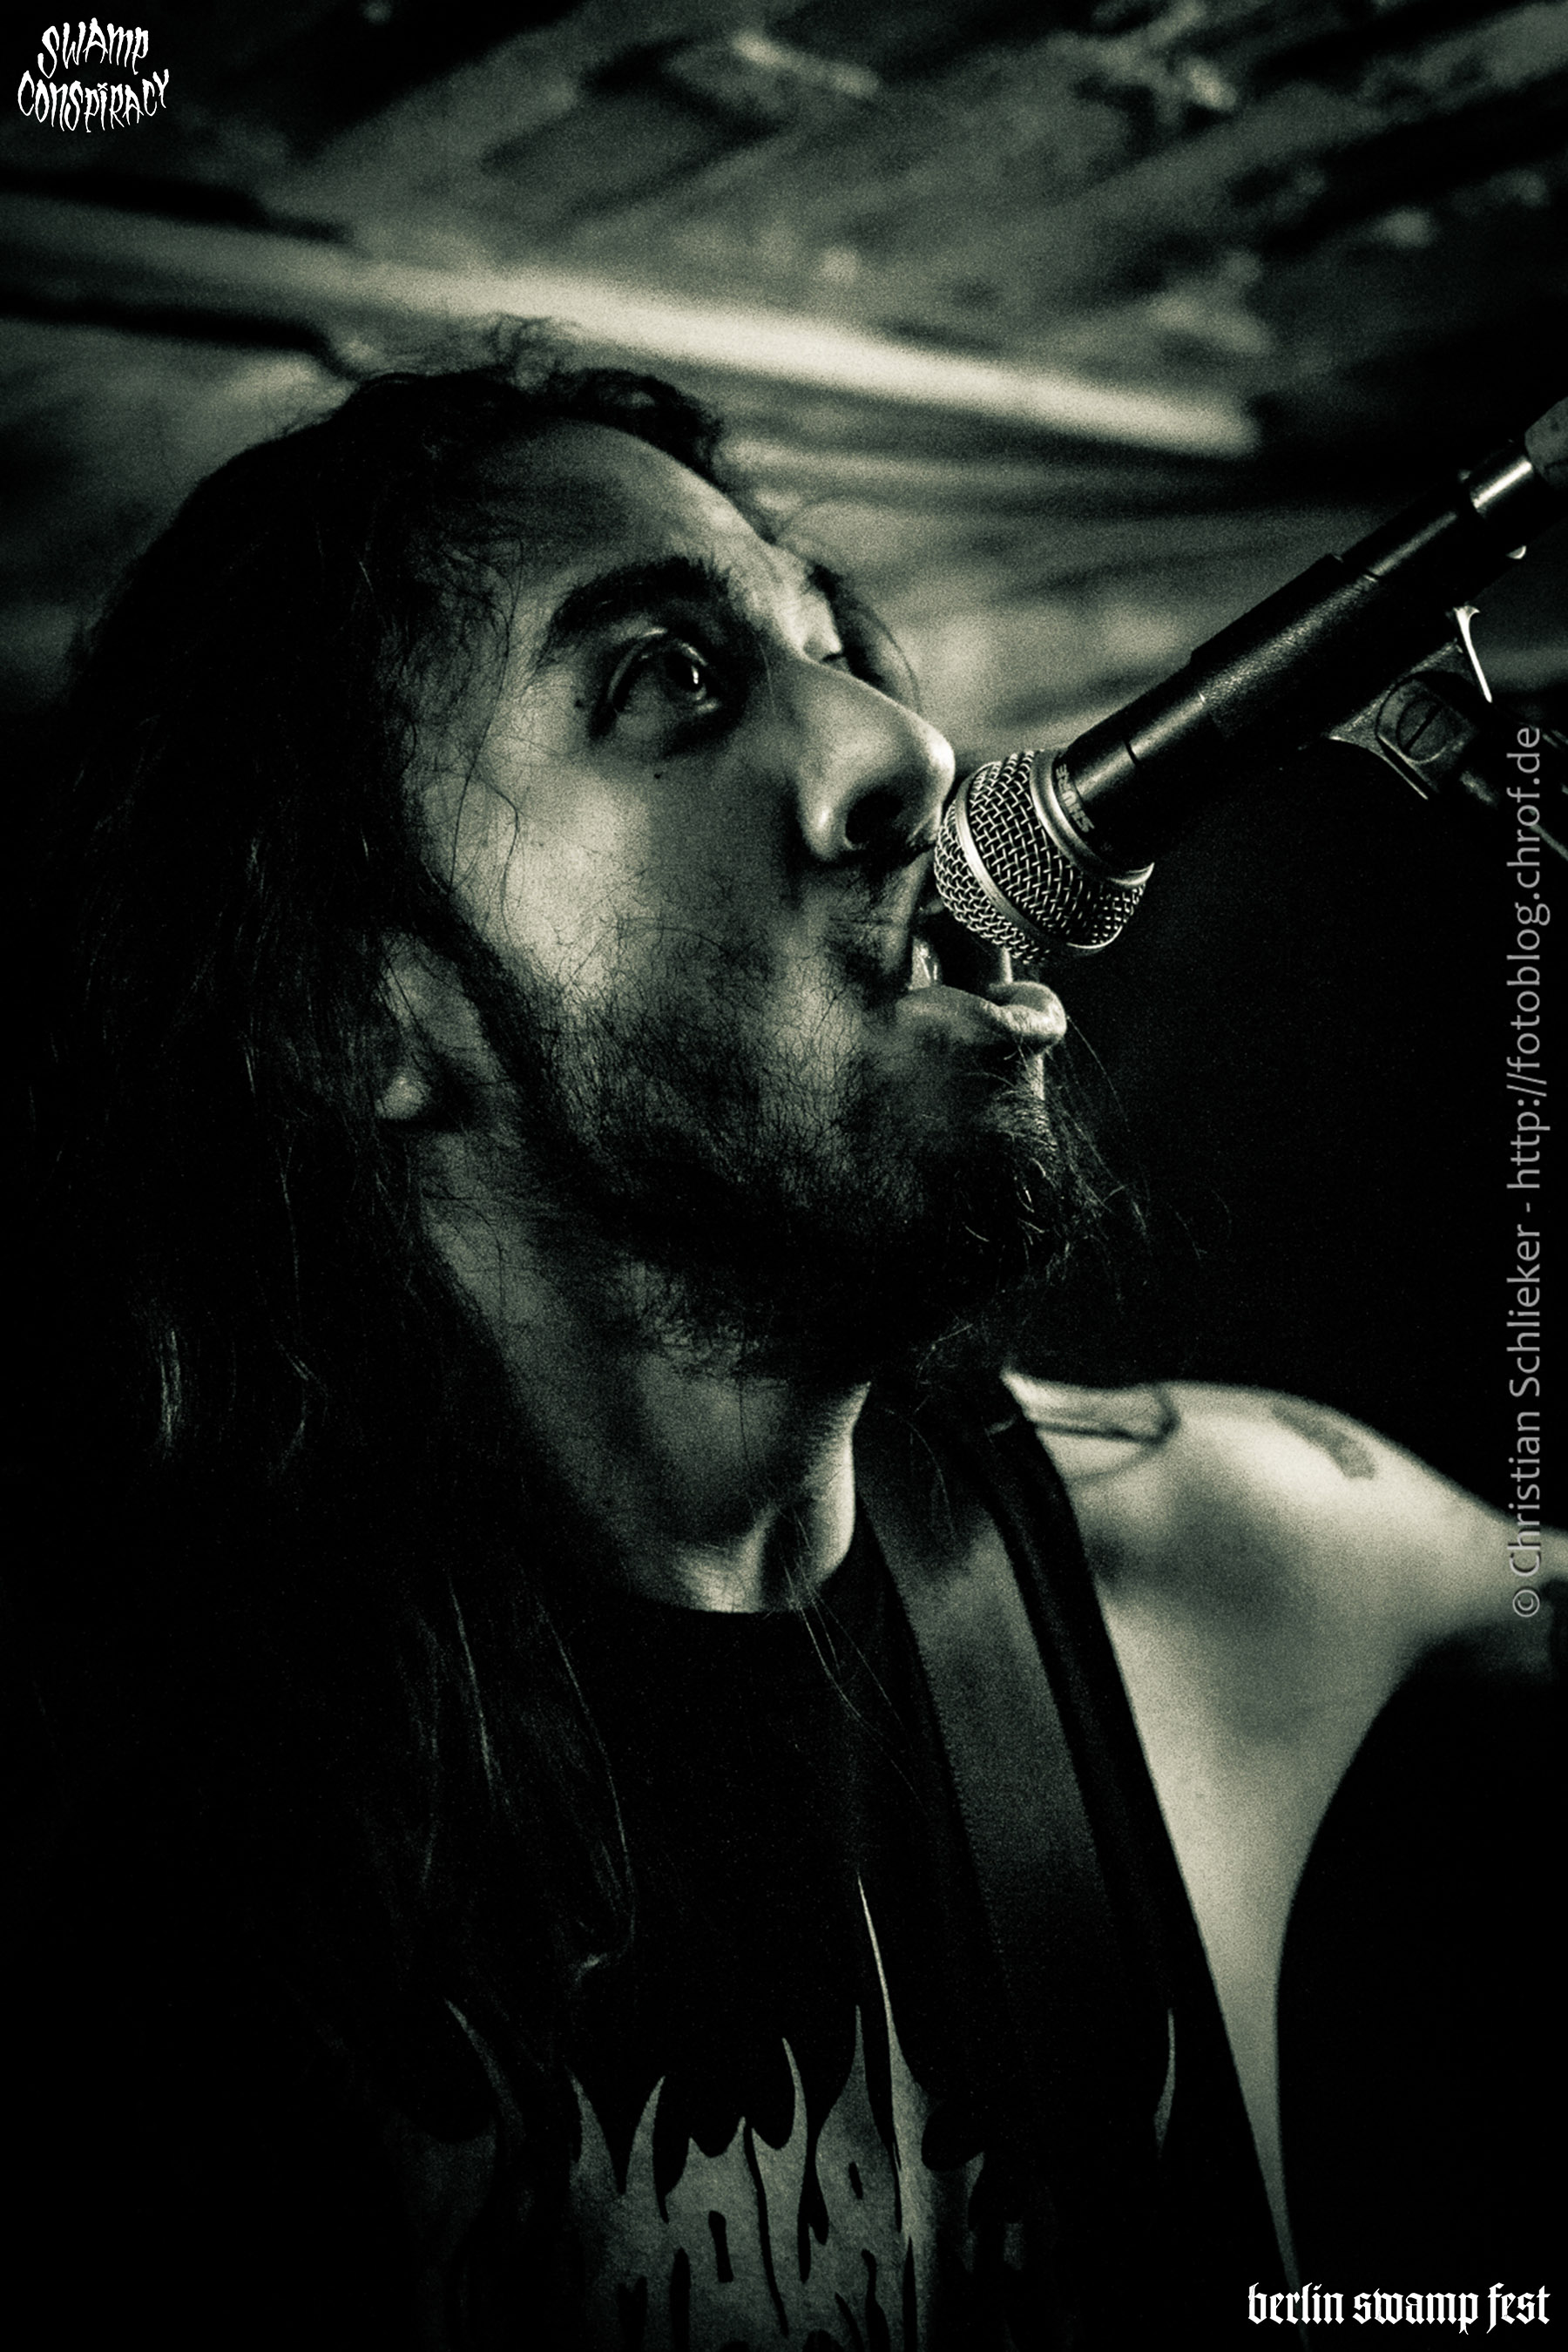 Of_Feather_and_Bone_Berlin_Swamp_Fest_2019_5